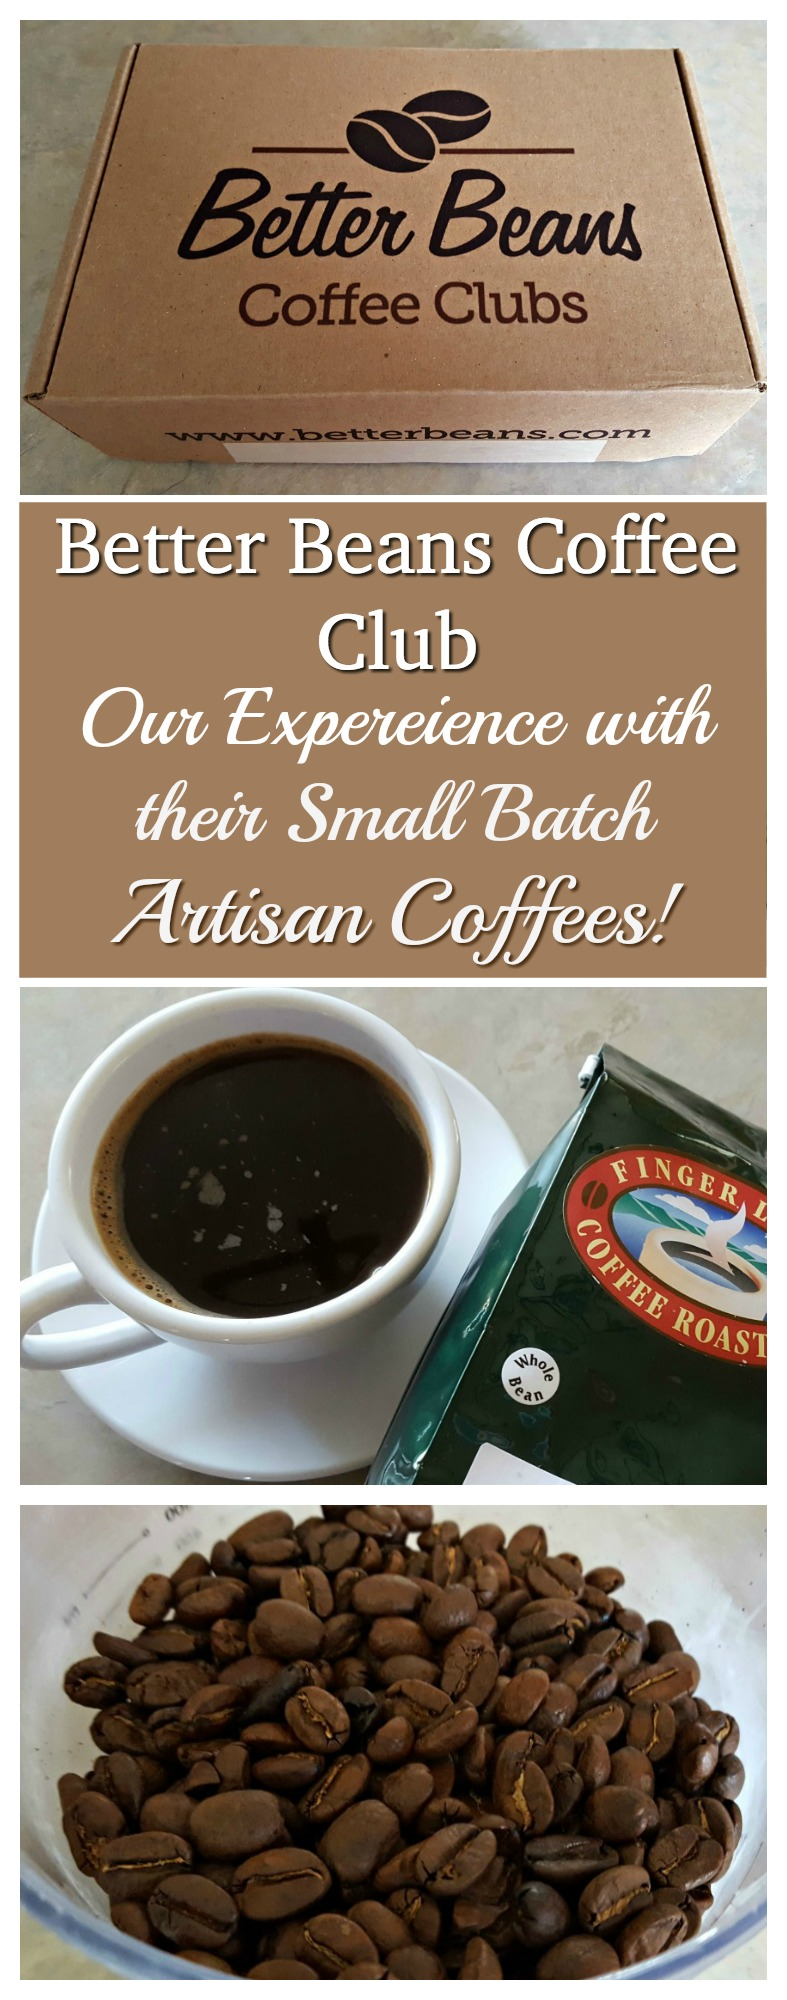 You will love these artisan coffees from small batch roasters as much as we did!!